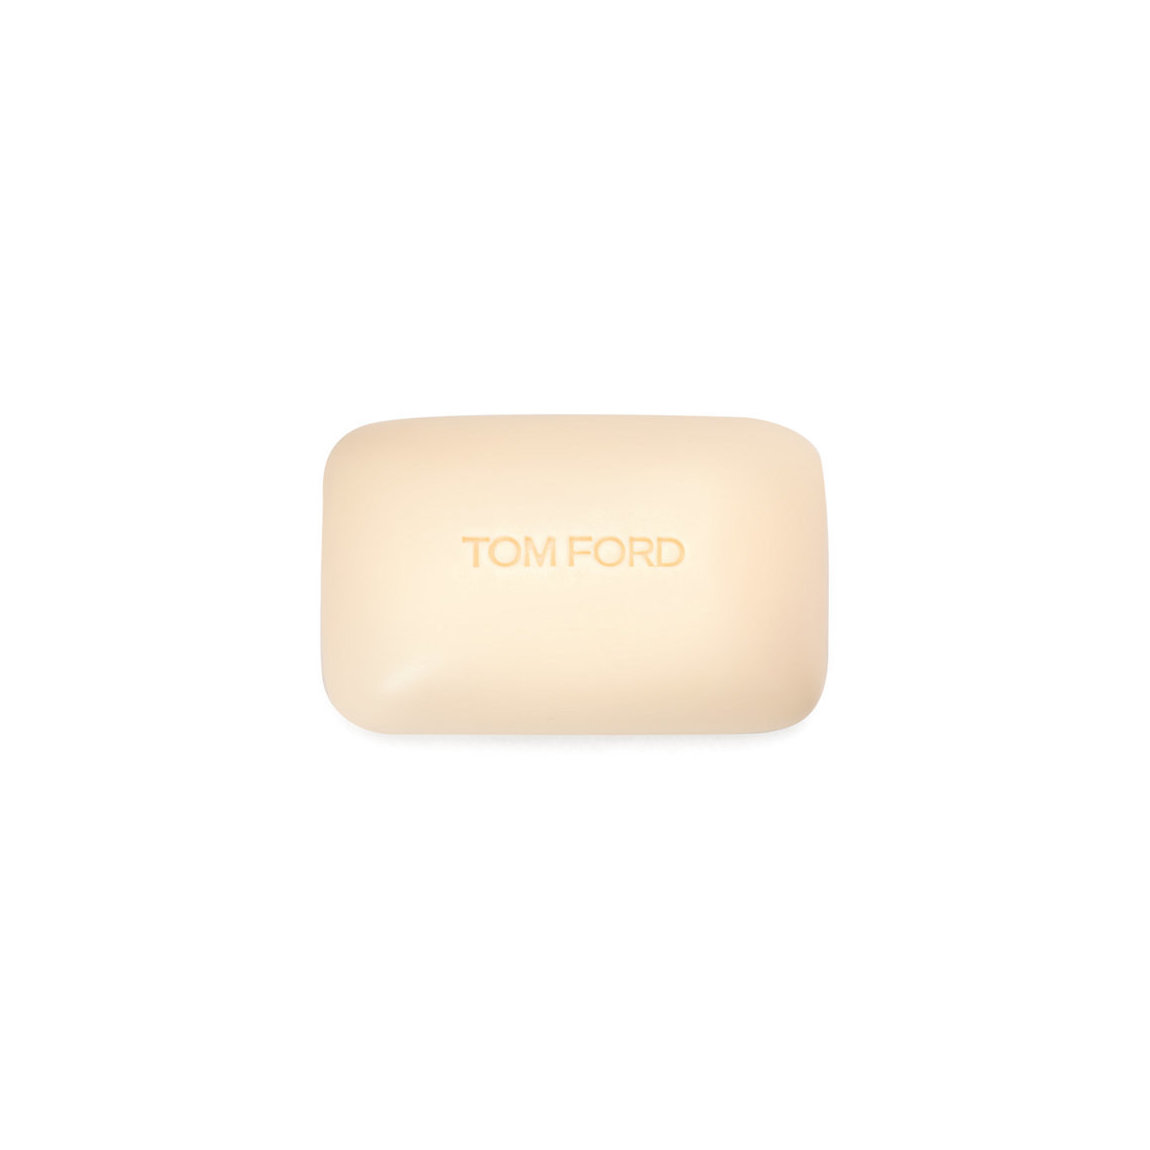 TOM FORD Neroli Portofino Bath Soap product swatch.